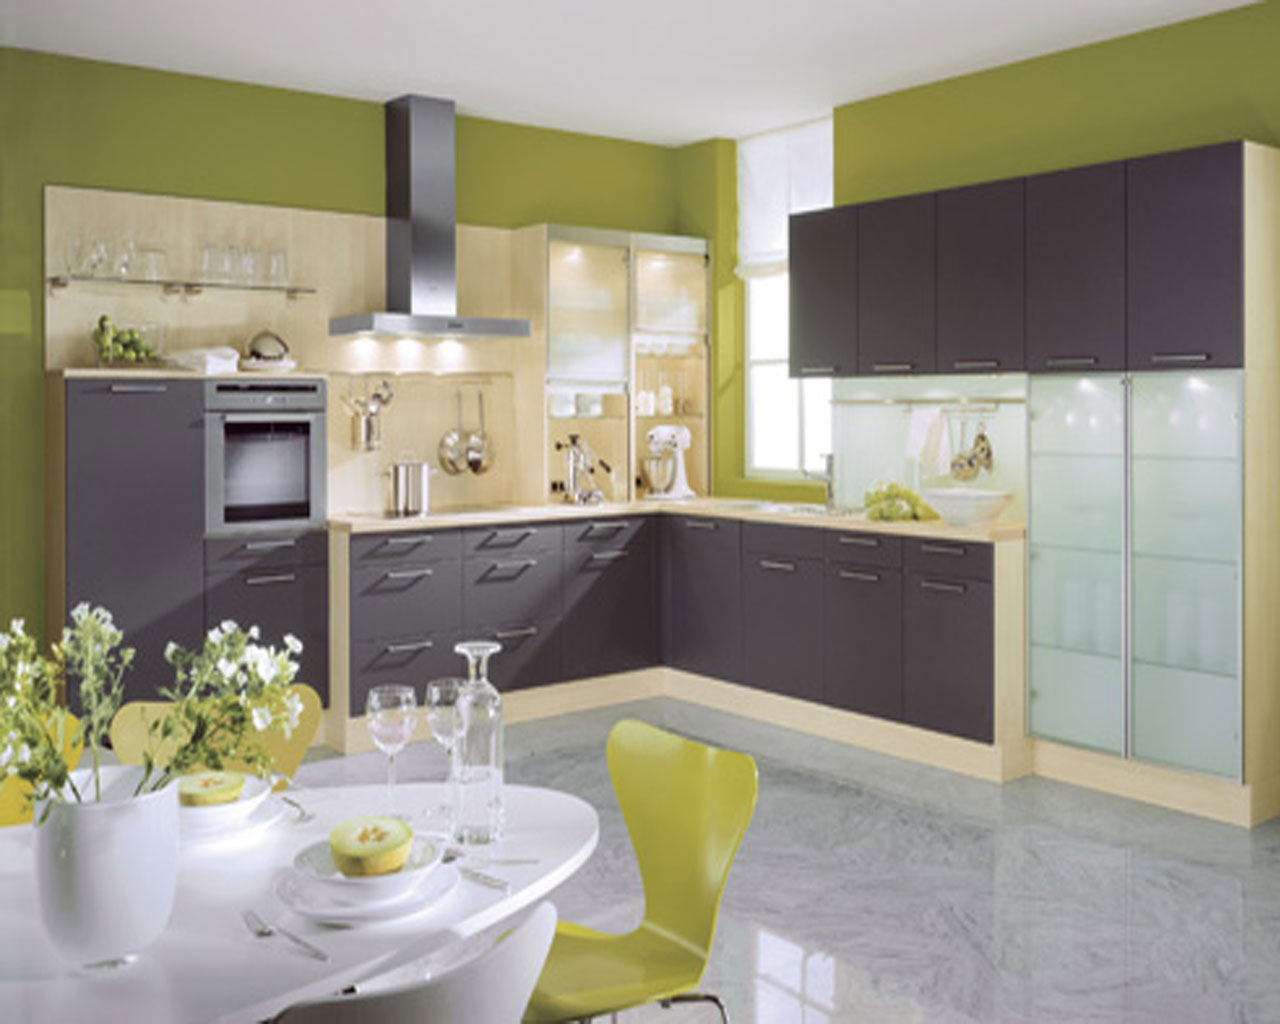 30 Best Kitchen Ideas For Your Home - The WoW Style on Kitchen Ideas  id=77016